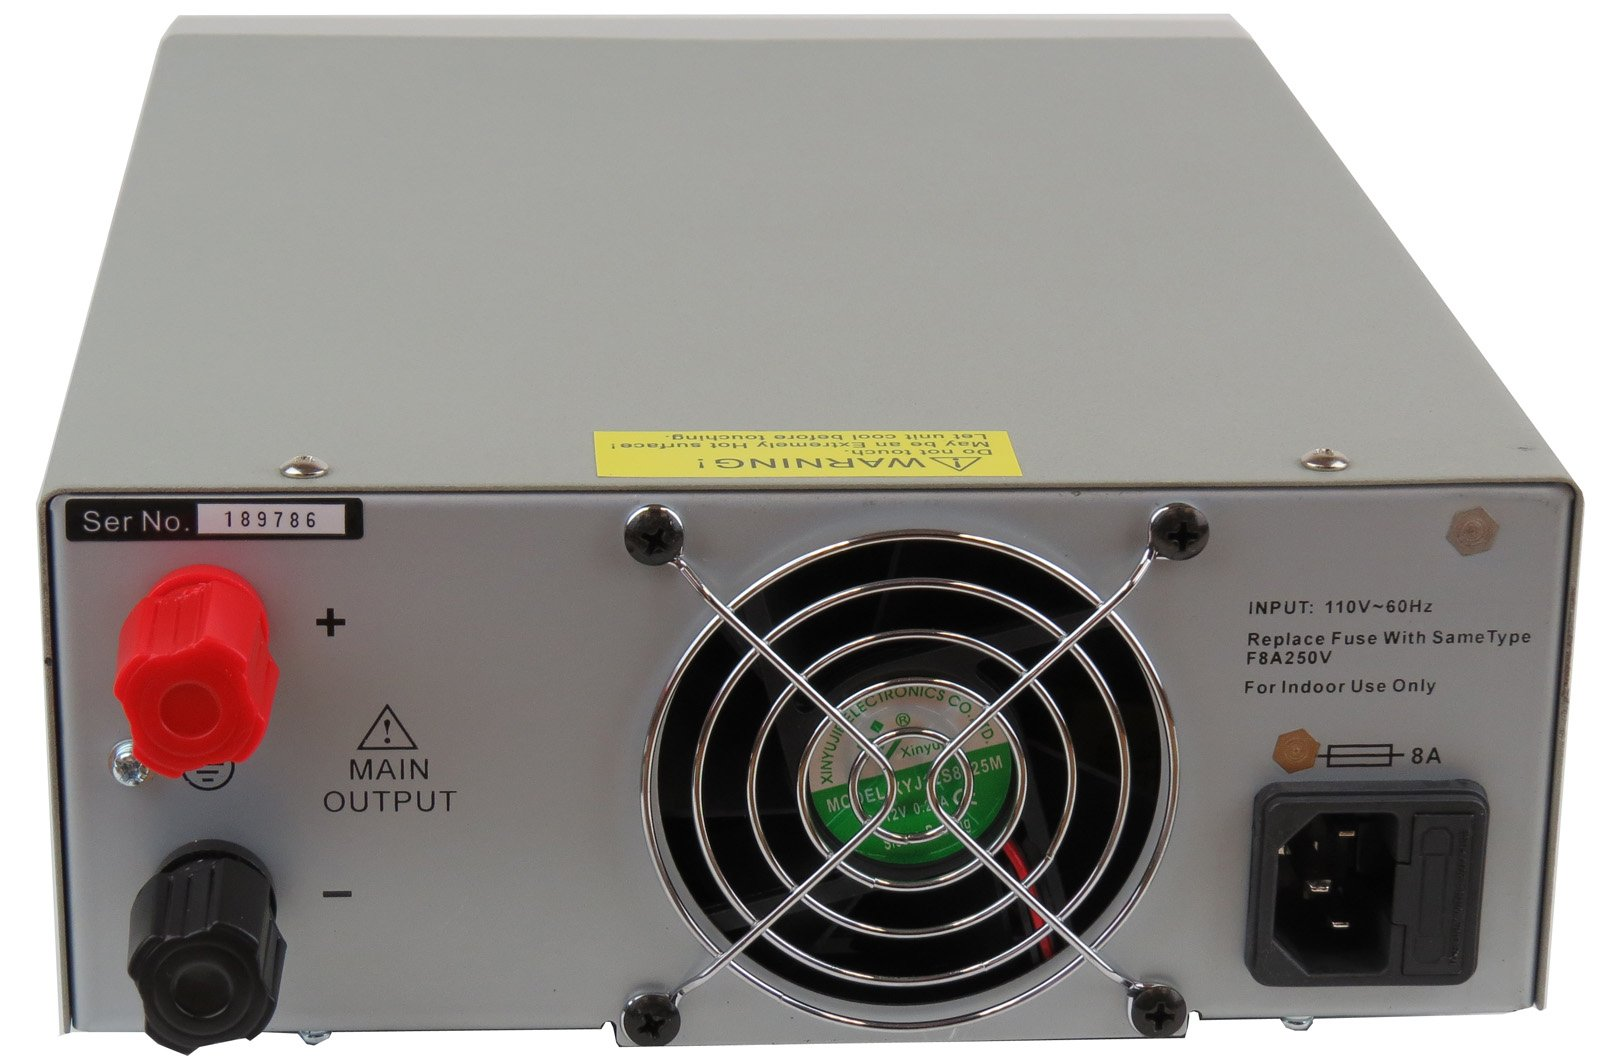 TekPower TP1540E DC Adjustable Switching Power Supply 15V 40A Digital Display by Tekpower (Image #2)